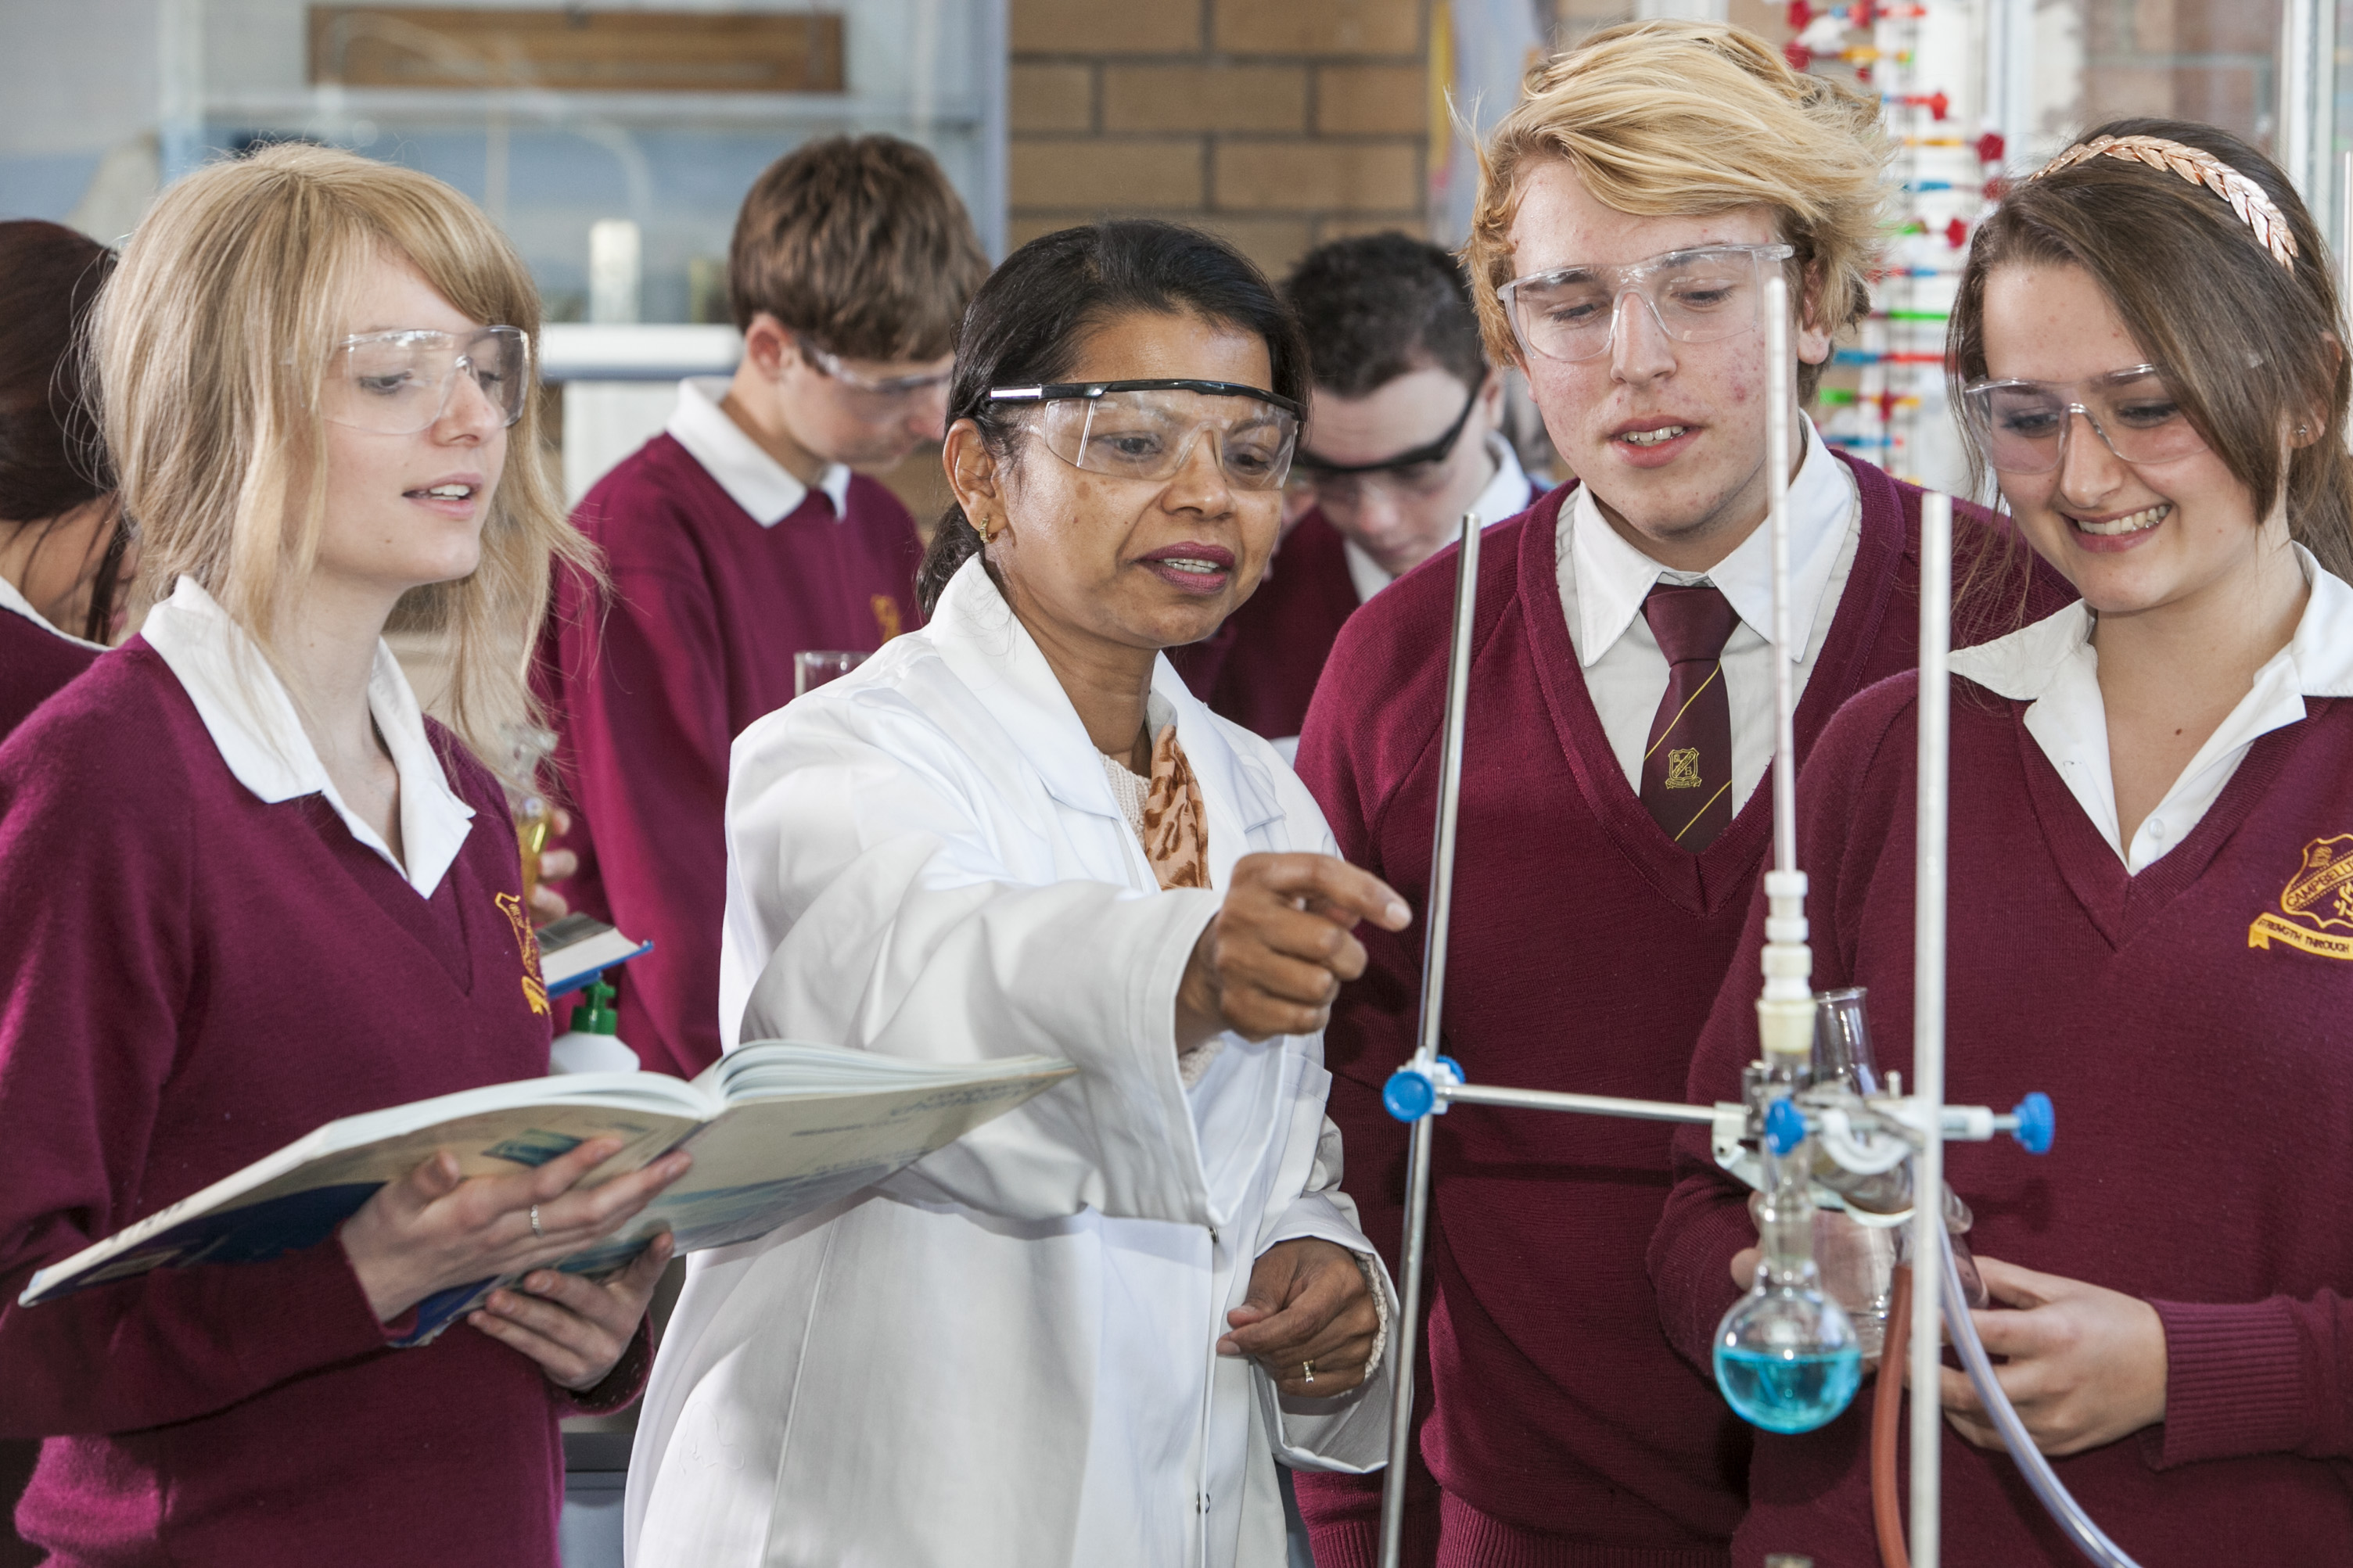 Students and teacher conducting a science experiment